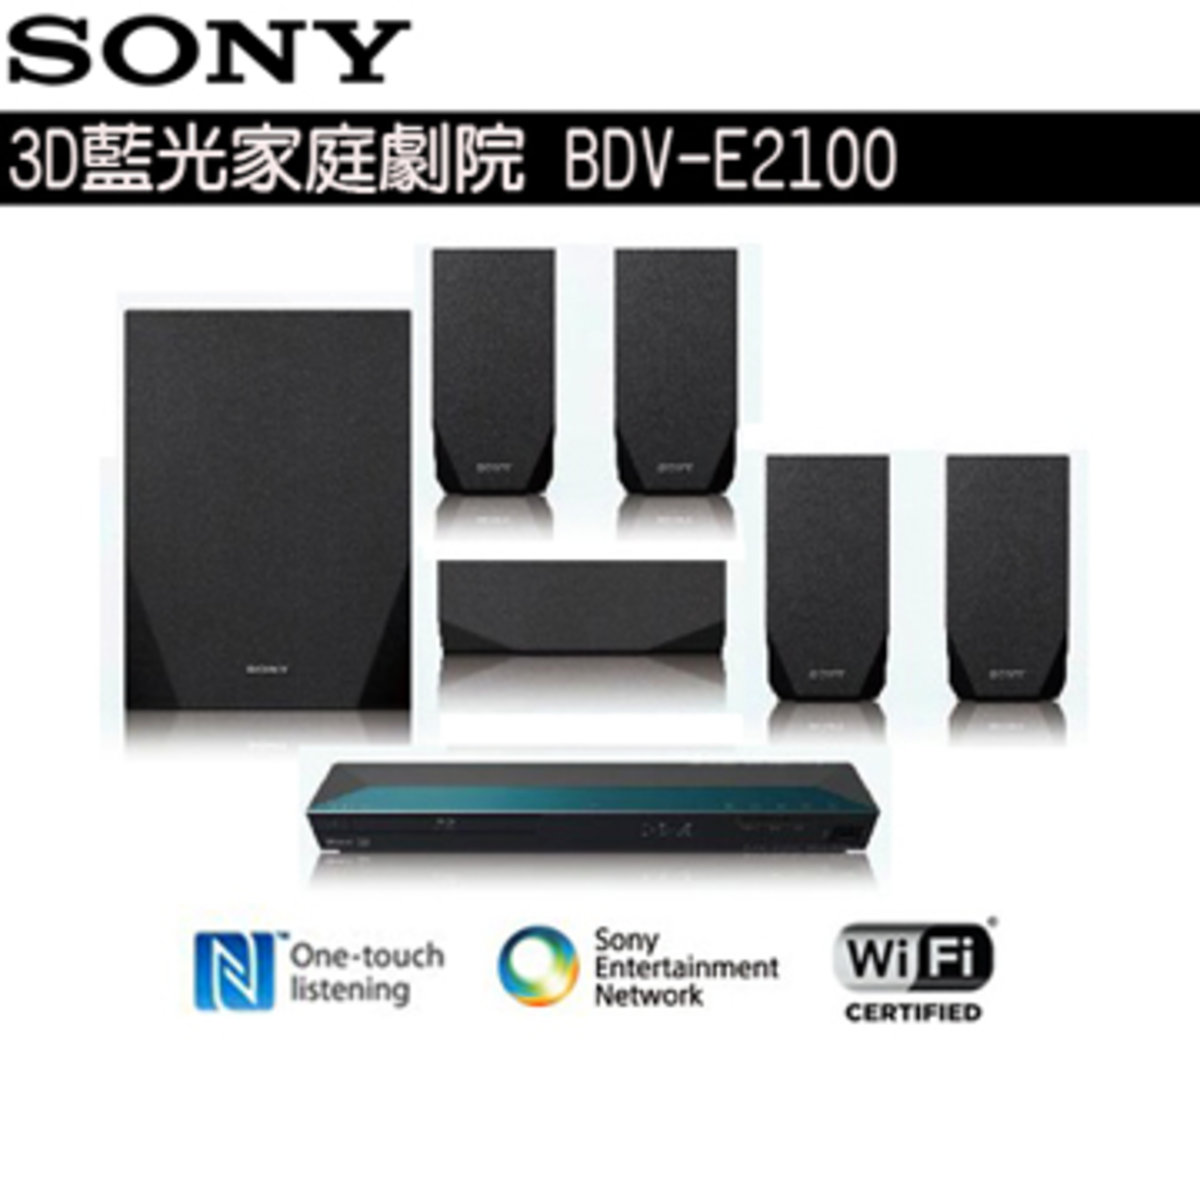 Modern Sony Home Entertainment Network Adornment - Everything You ...